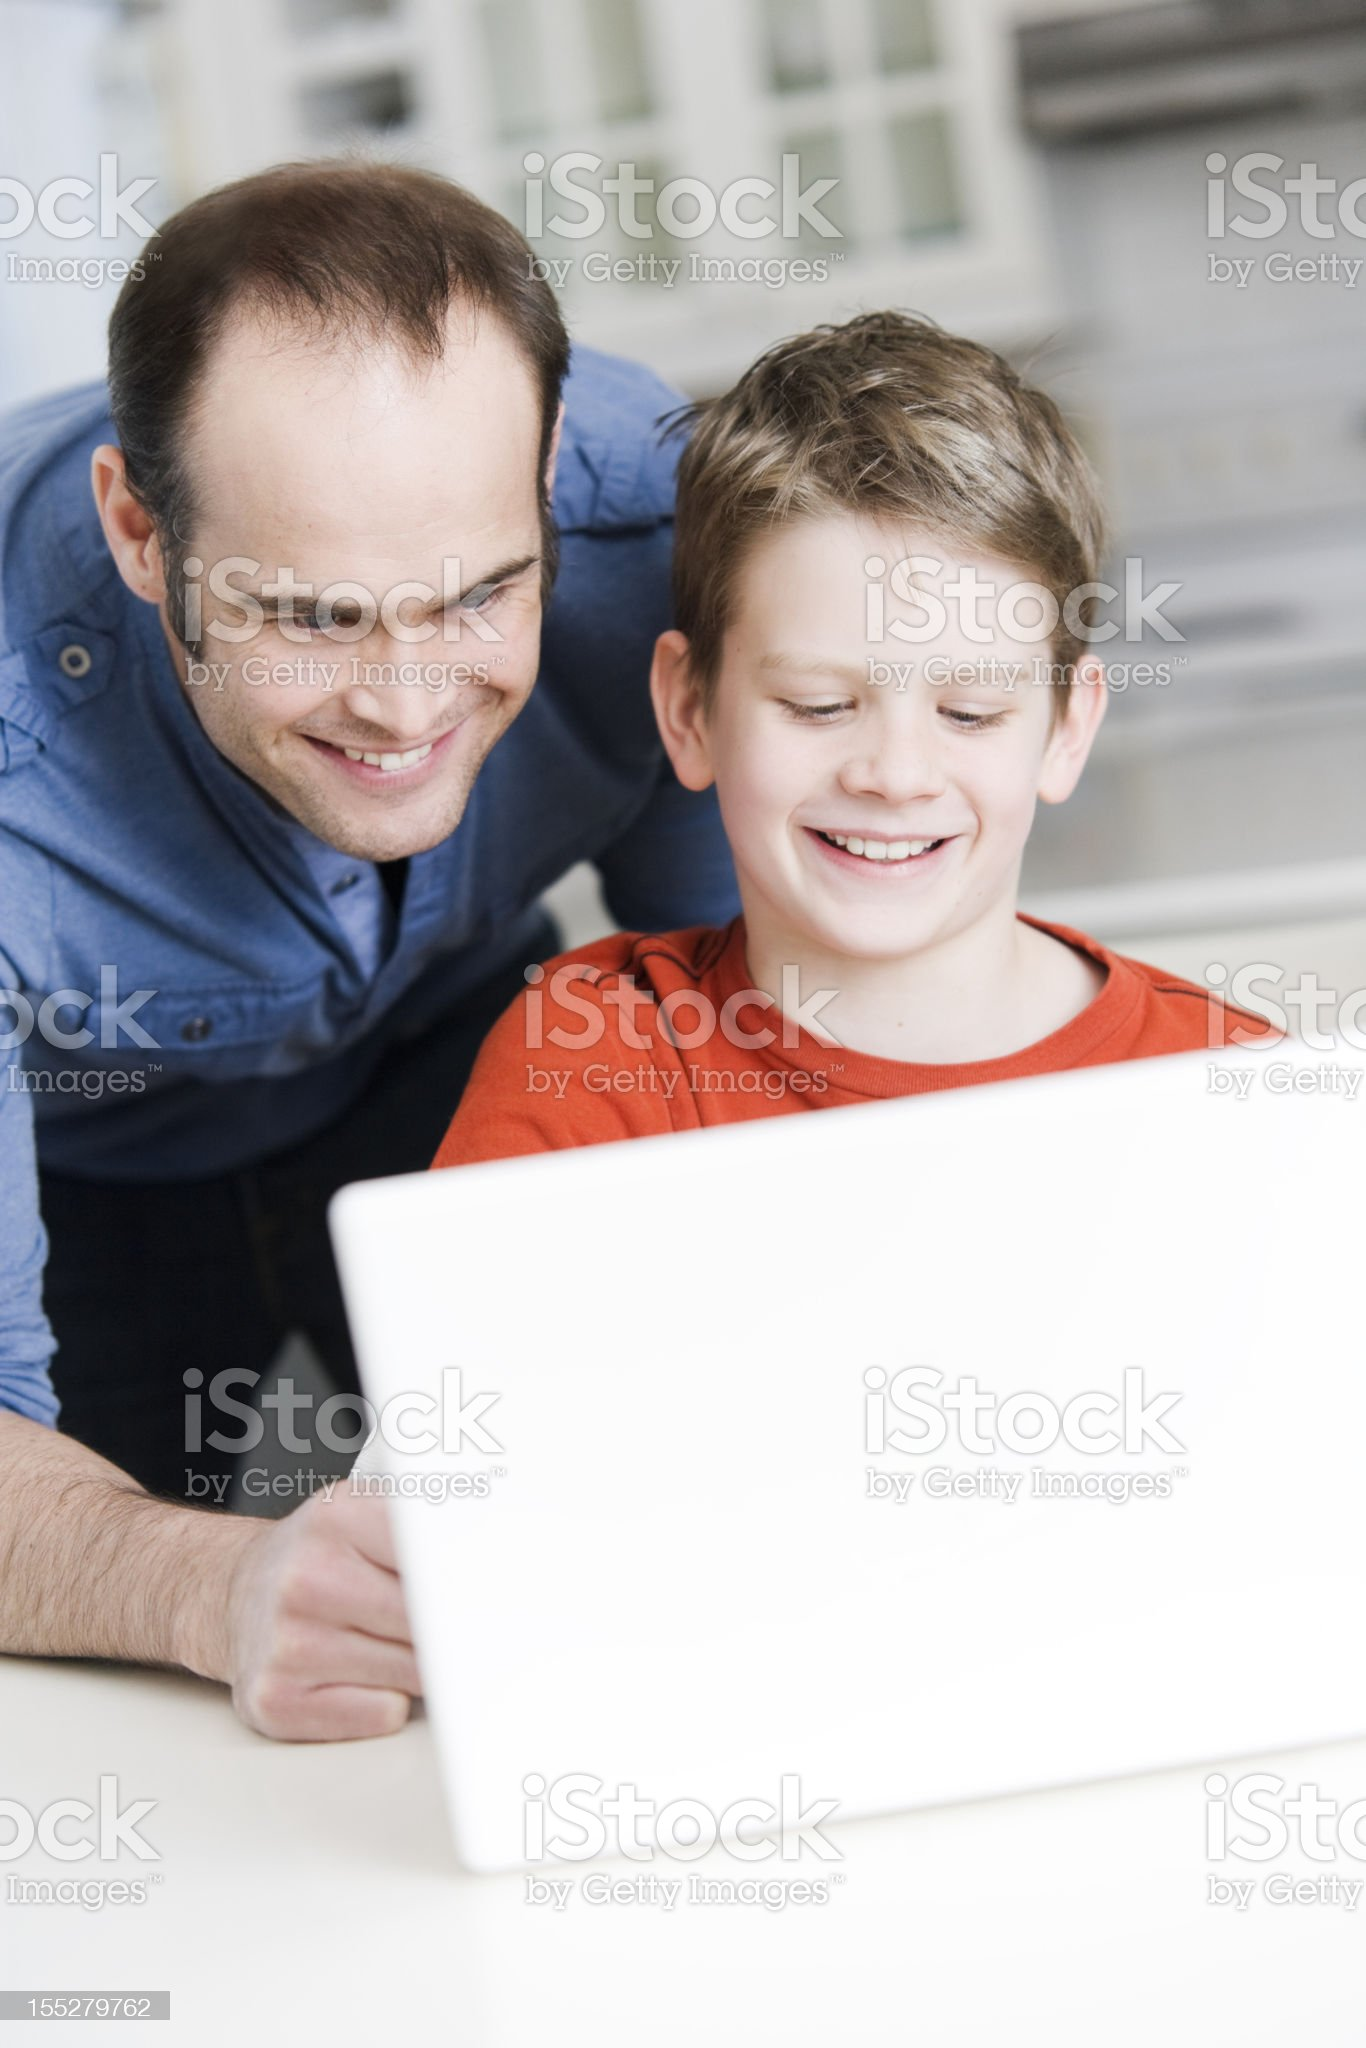 Father and Son using Computer royalty-free stock photo